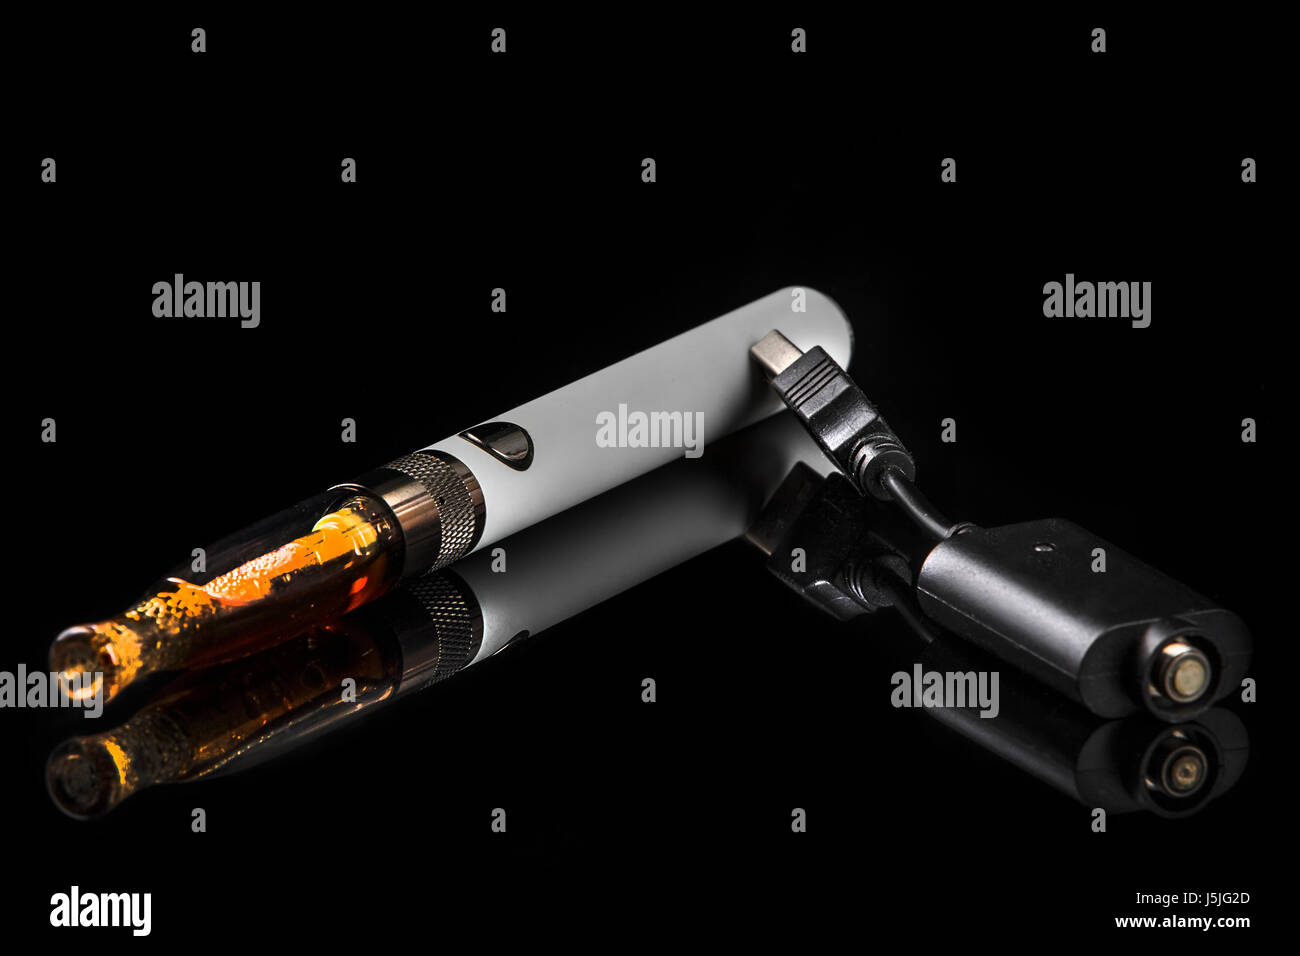 Electronic cigarette with charger on a black background. - Stock Image